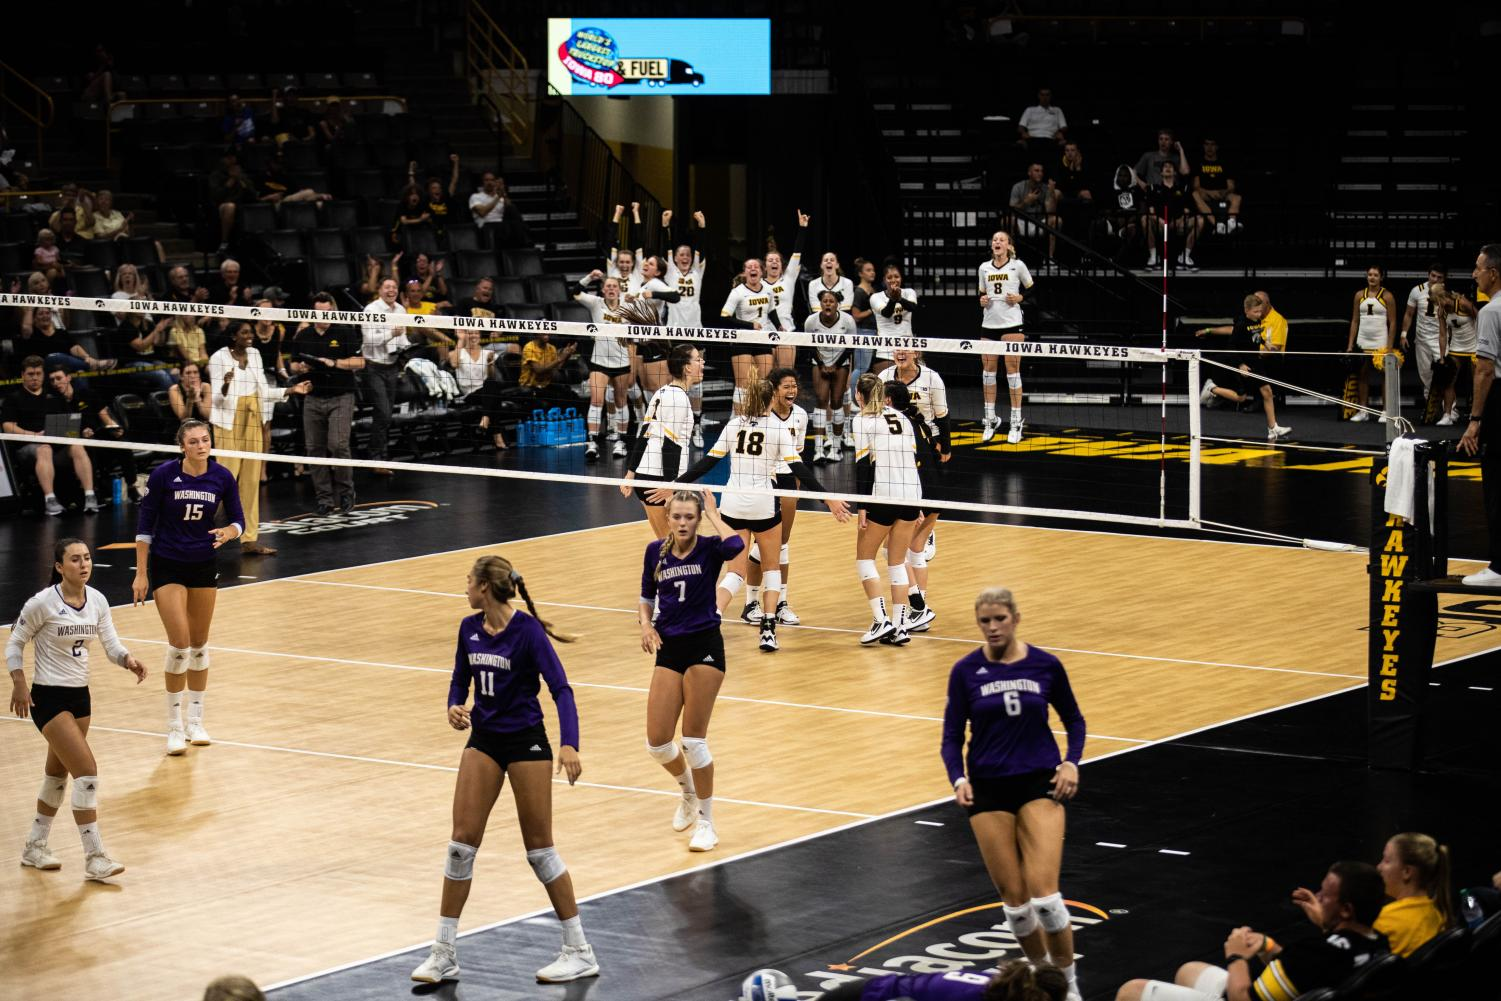 Iowa+players+celebrate+a+point+during+a+volleyball+match+between+Iowa+and+Washington+at+Carver+Hawkeye+Arena+on+Saturday%2C+September+7%2C+2019.+The+Hawkeyes+were+defeated+by+the+Huskies%2C+3-1.